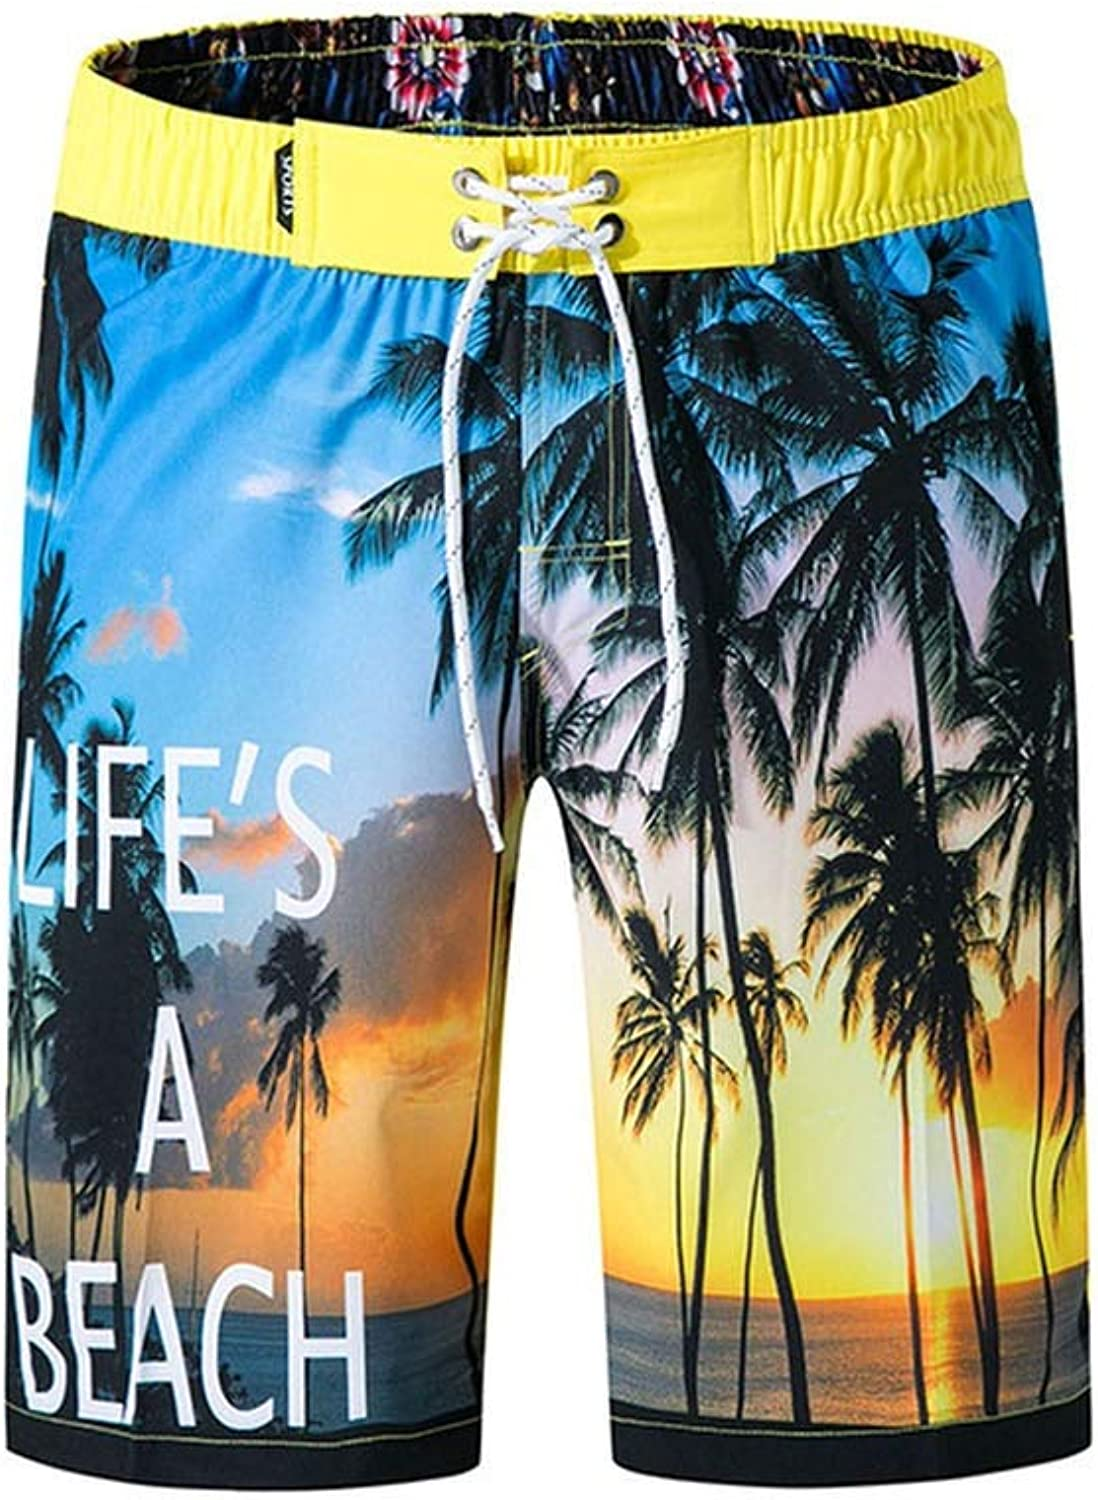 HappyWe Mens Swimsuits Eagle Print Beach Wear Beach Board Summer Quick Dry Bathing Suits Surfing Shorts